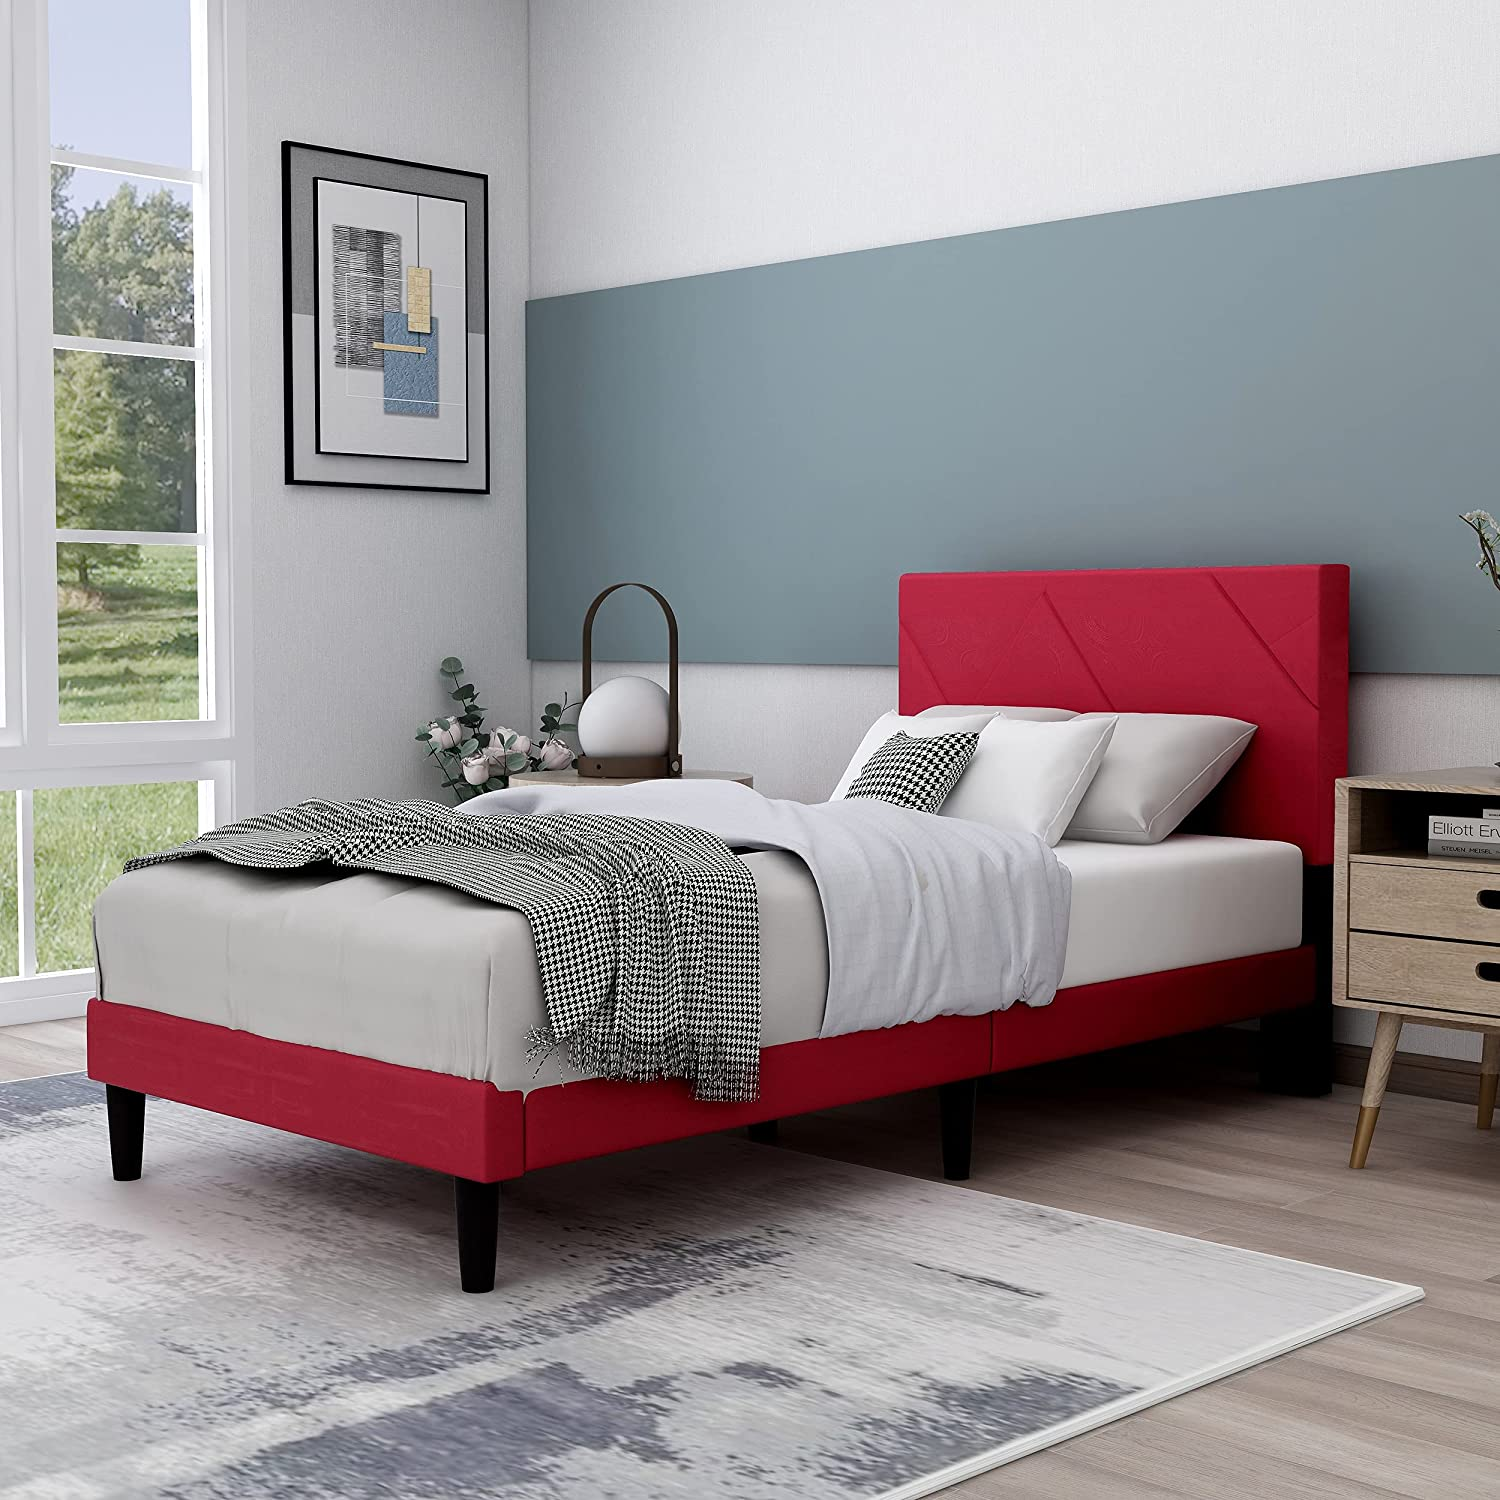 Upholstered Platform Bed Frame with Headboard, Mattress Foundation/Wood Slat Support/No Box Spring Needed/Easy Assembly,Red,Twin